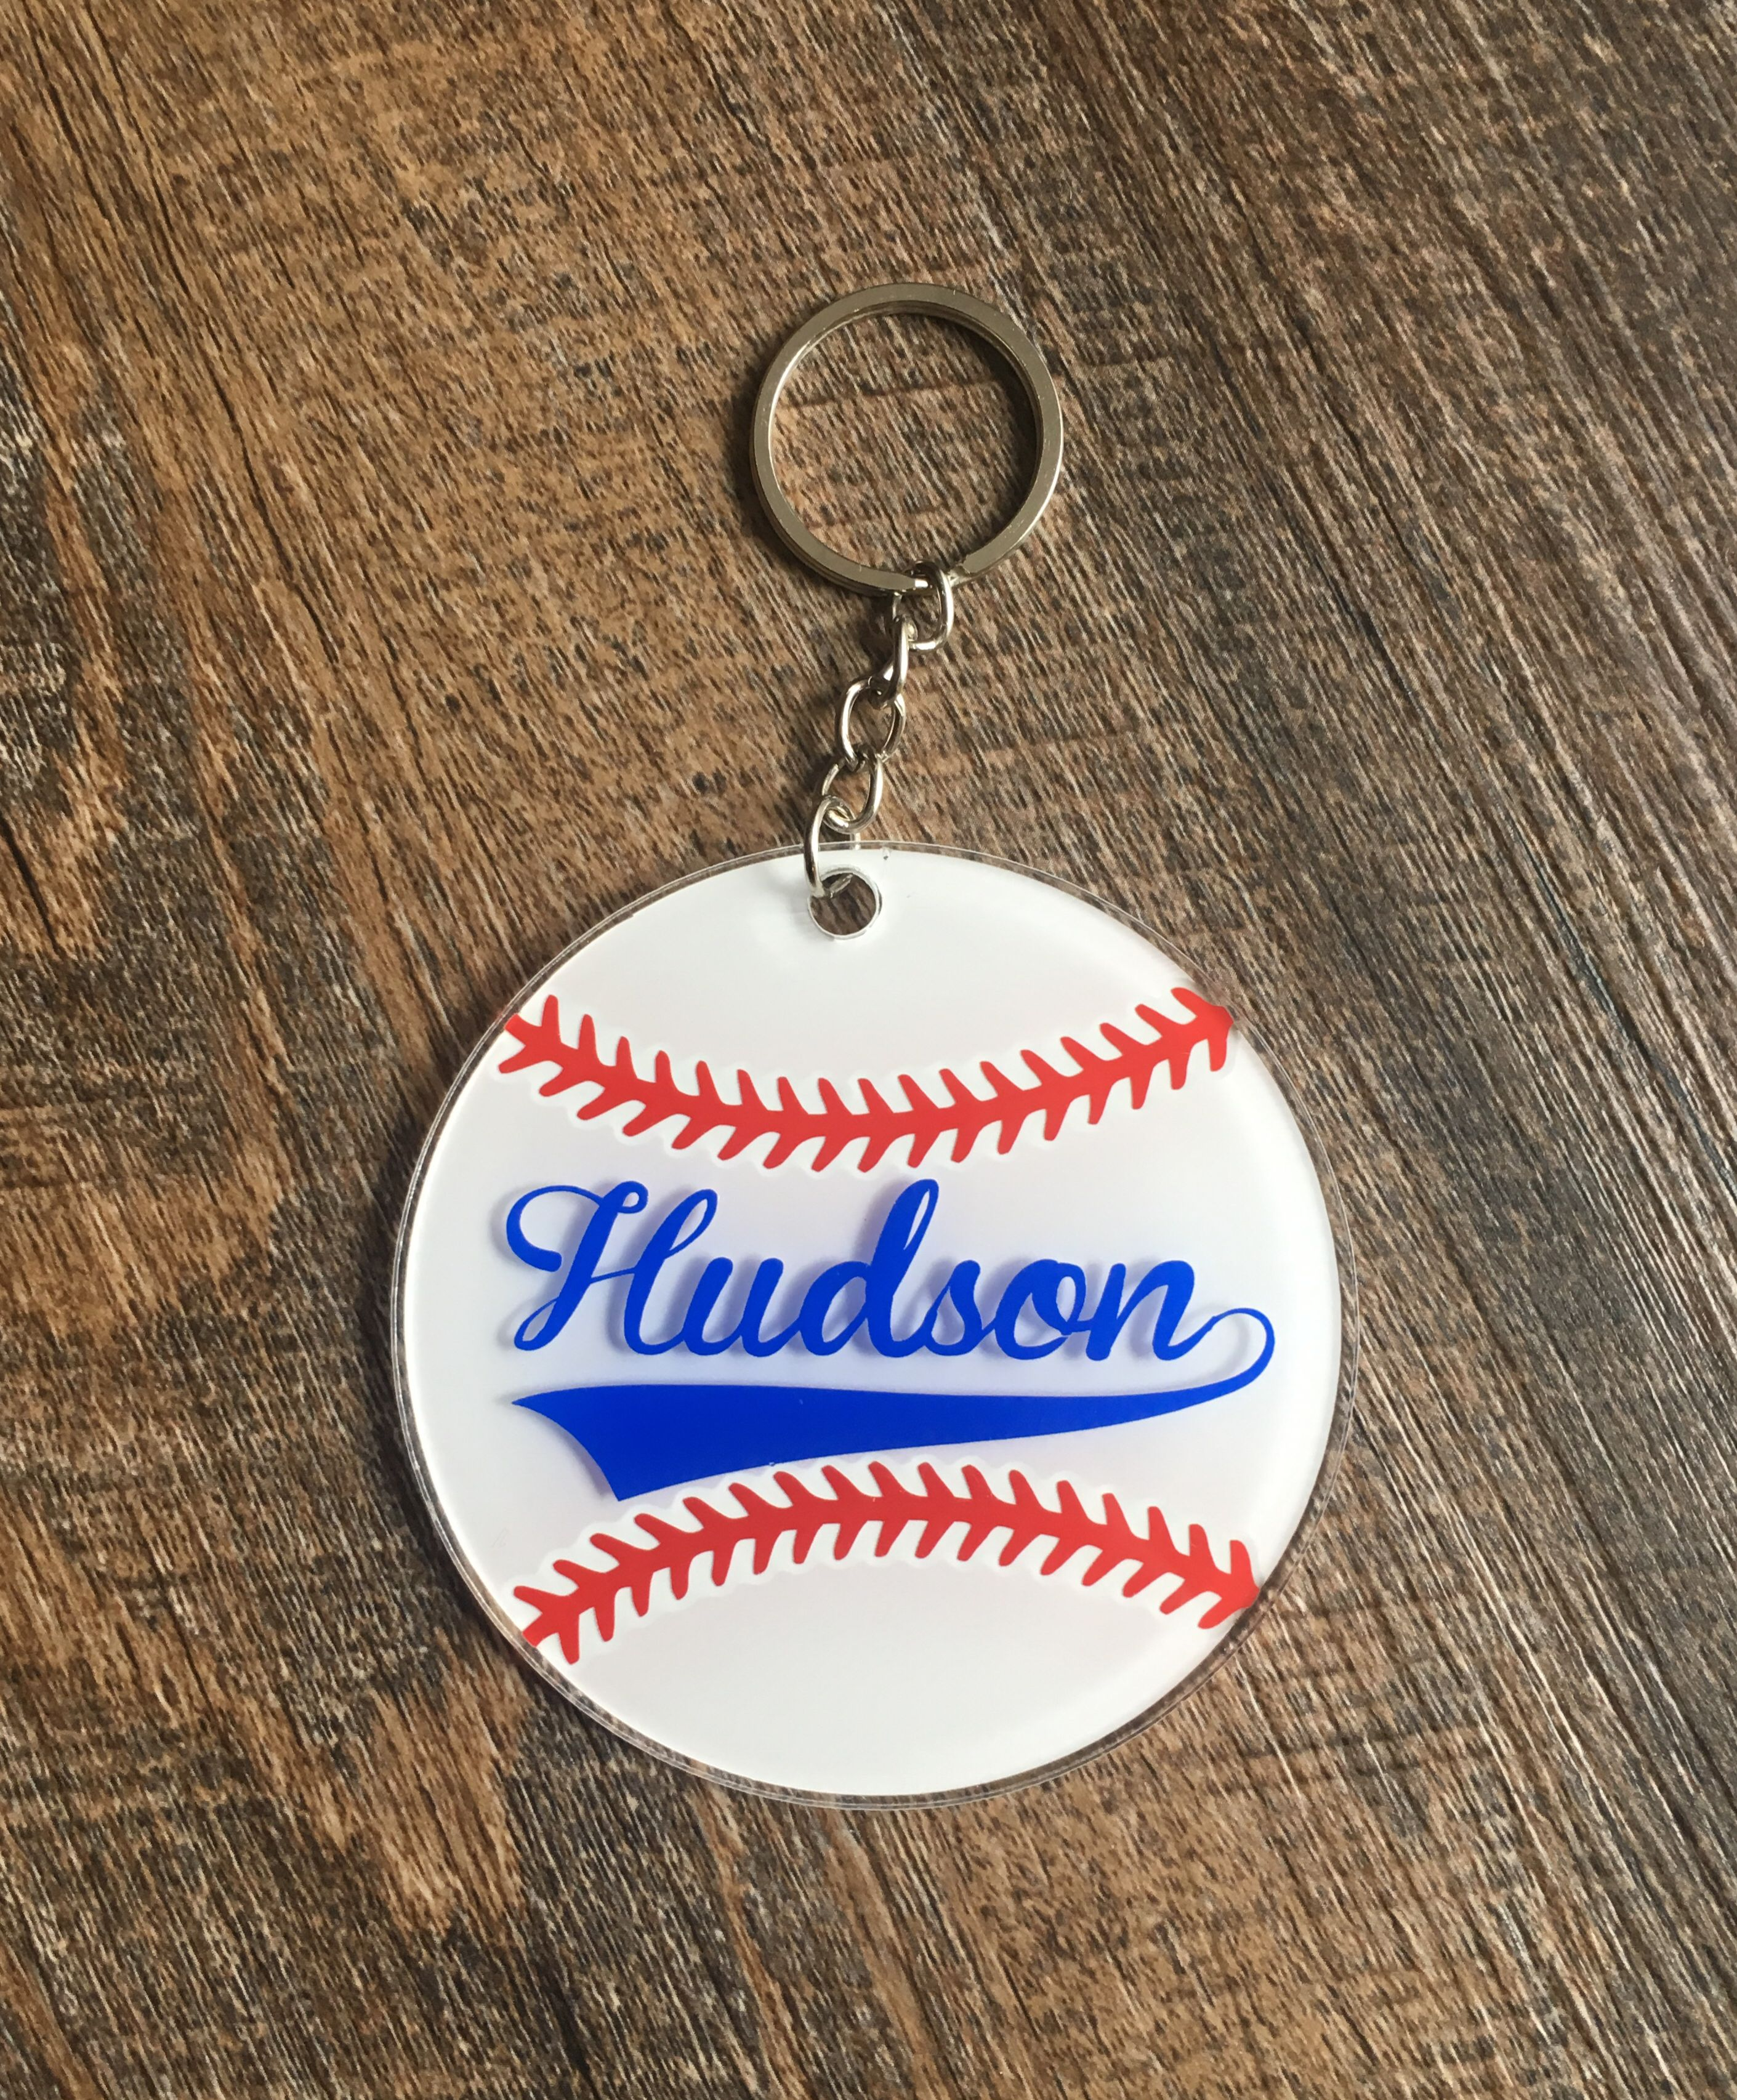 3 Acrylic Personalized Baseball Book Bag Keychains Tags Etsy In 2020 Personalized Baseballs Sports Lover Gifts Kids Baseball Gifts